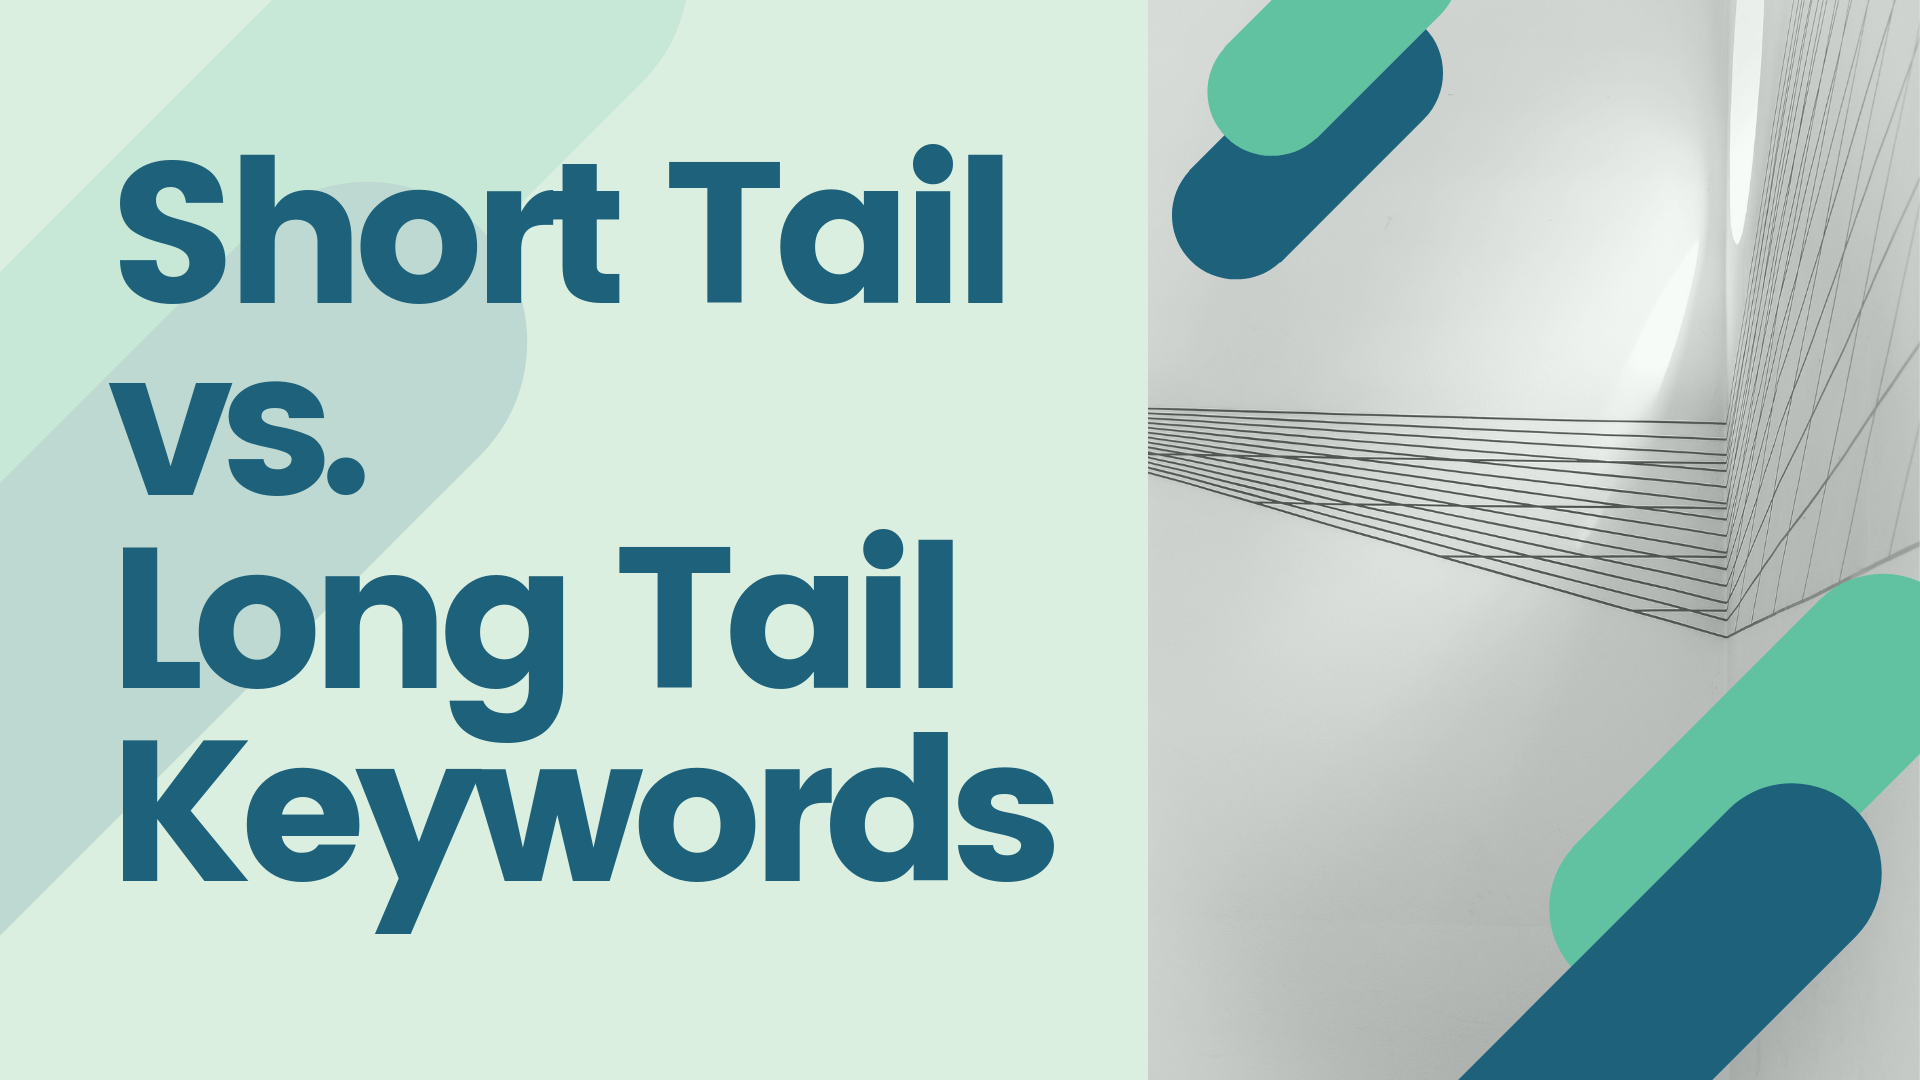 What's the Difference Between Short Tail and Long Tail Keywords?